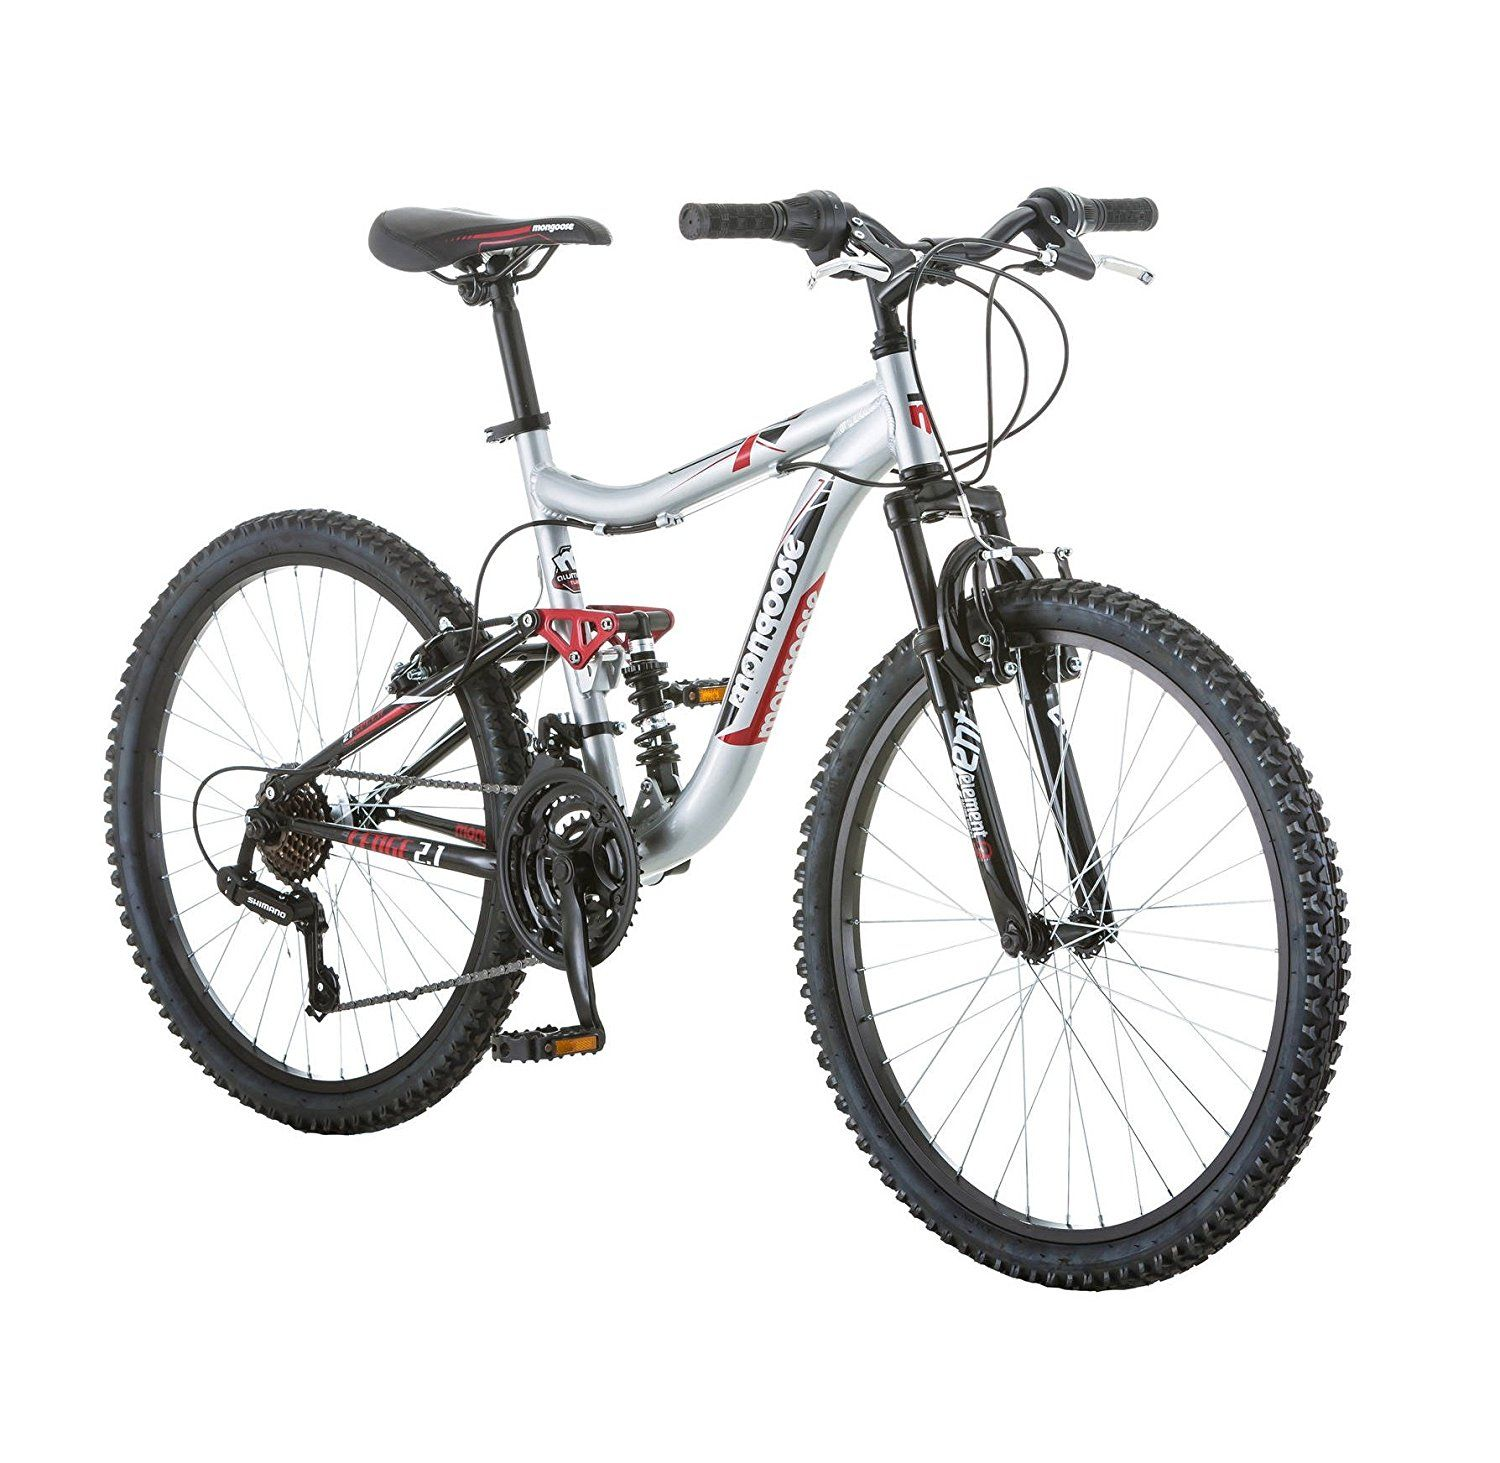 Best Cheap Mountain Bike Top 6 Reviews With Images Kids